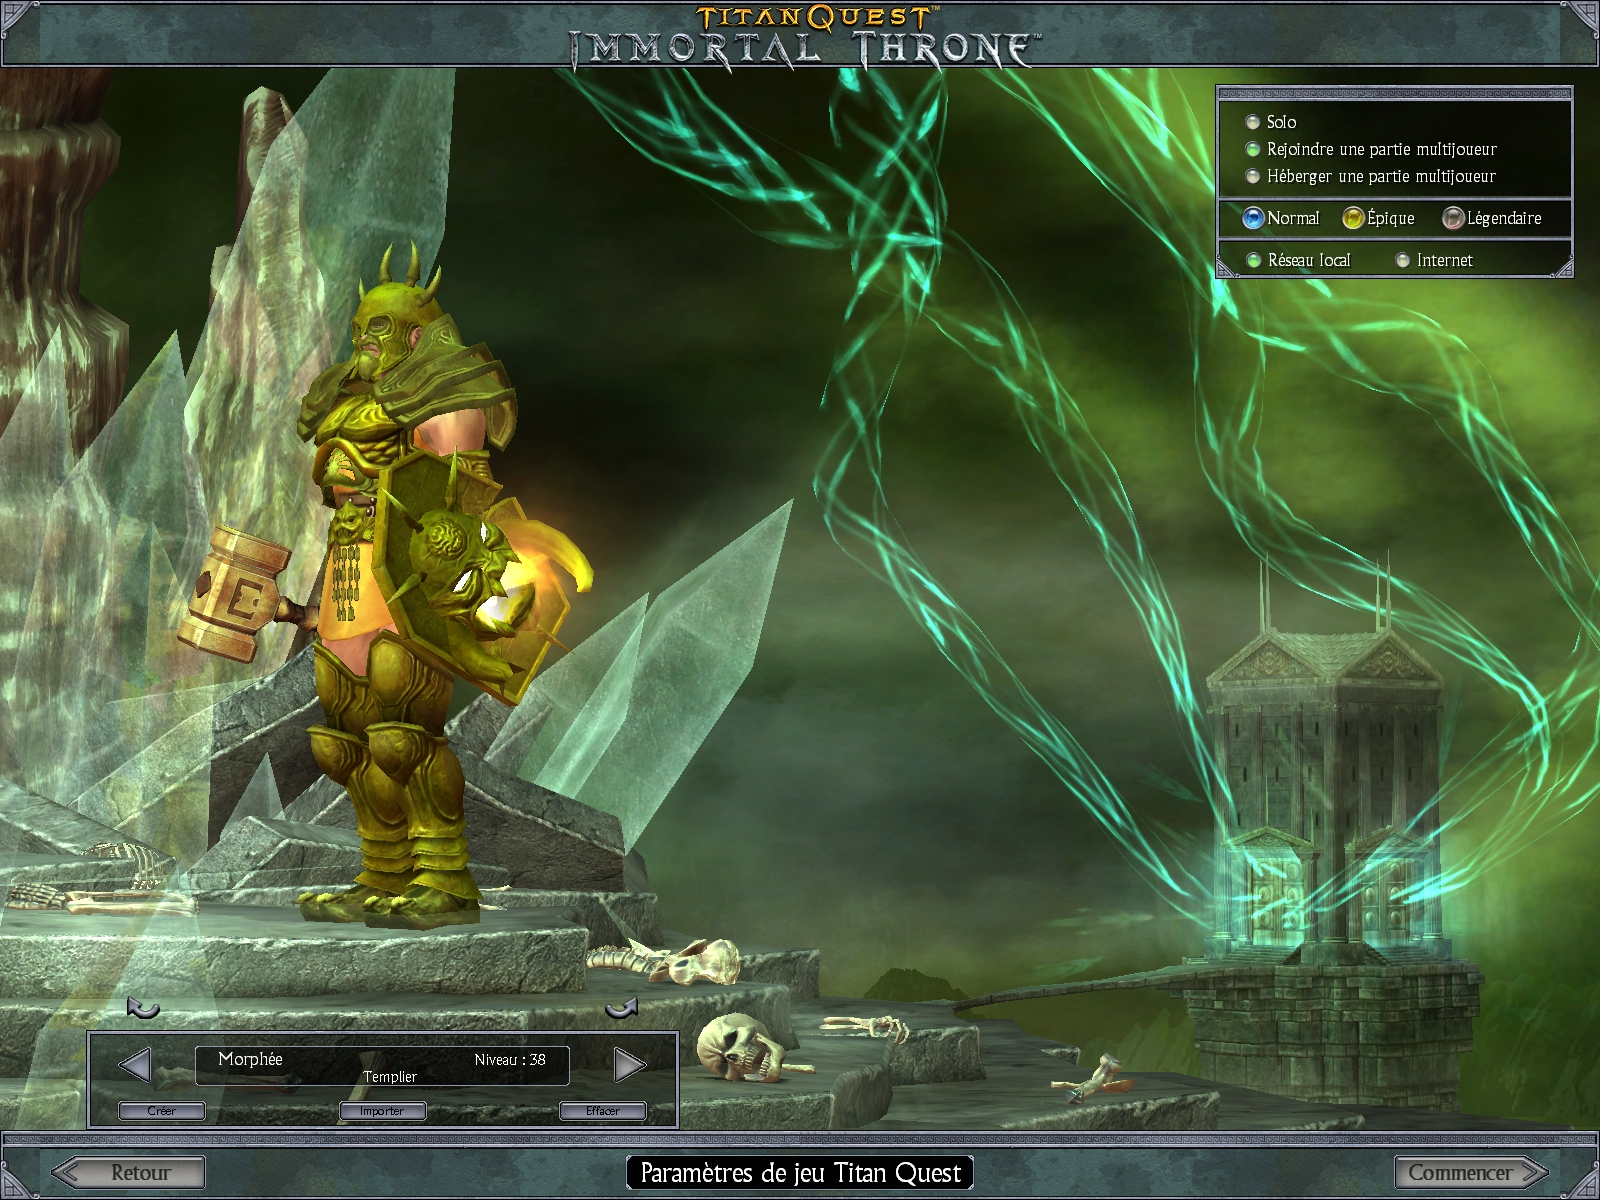 The Fantasy Art of Titan Quest and the Immortal Throne